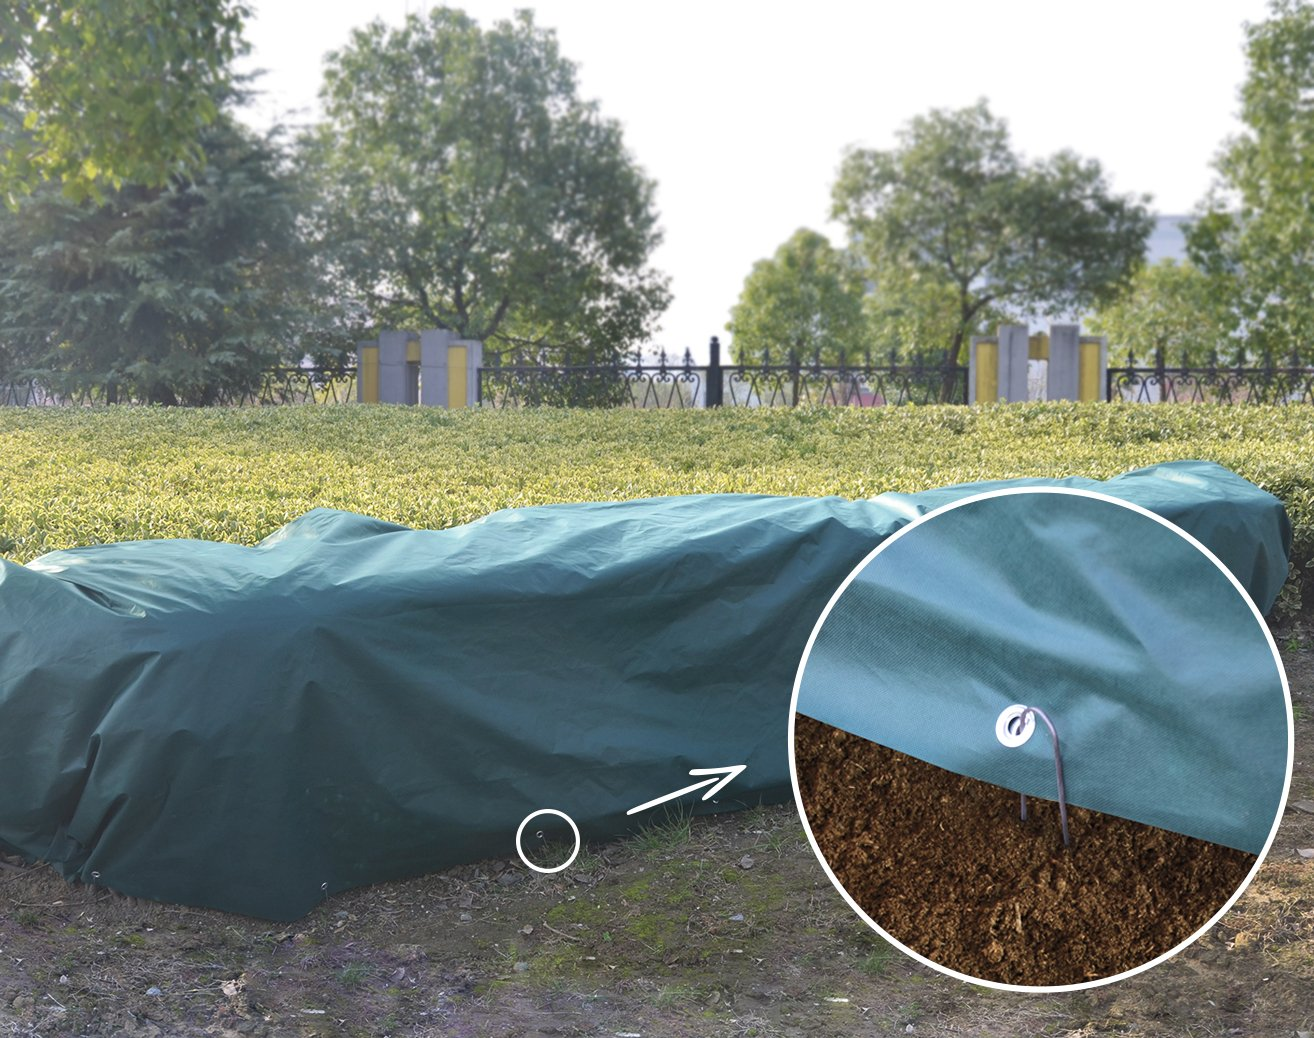 Agfabric Warm Worth Super-Heavy Floating Row Cover & Plant Blanket Kit with Pins, 1.5oz Fabric of 7x20ft for Frost Protection, Harsh Weather Resistance& Seed Germination, Dark Green